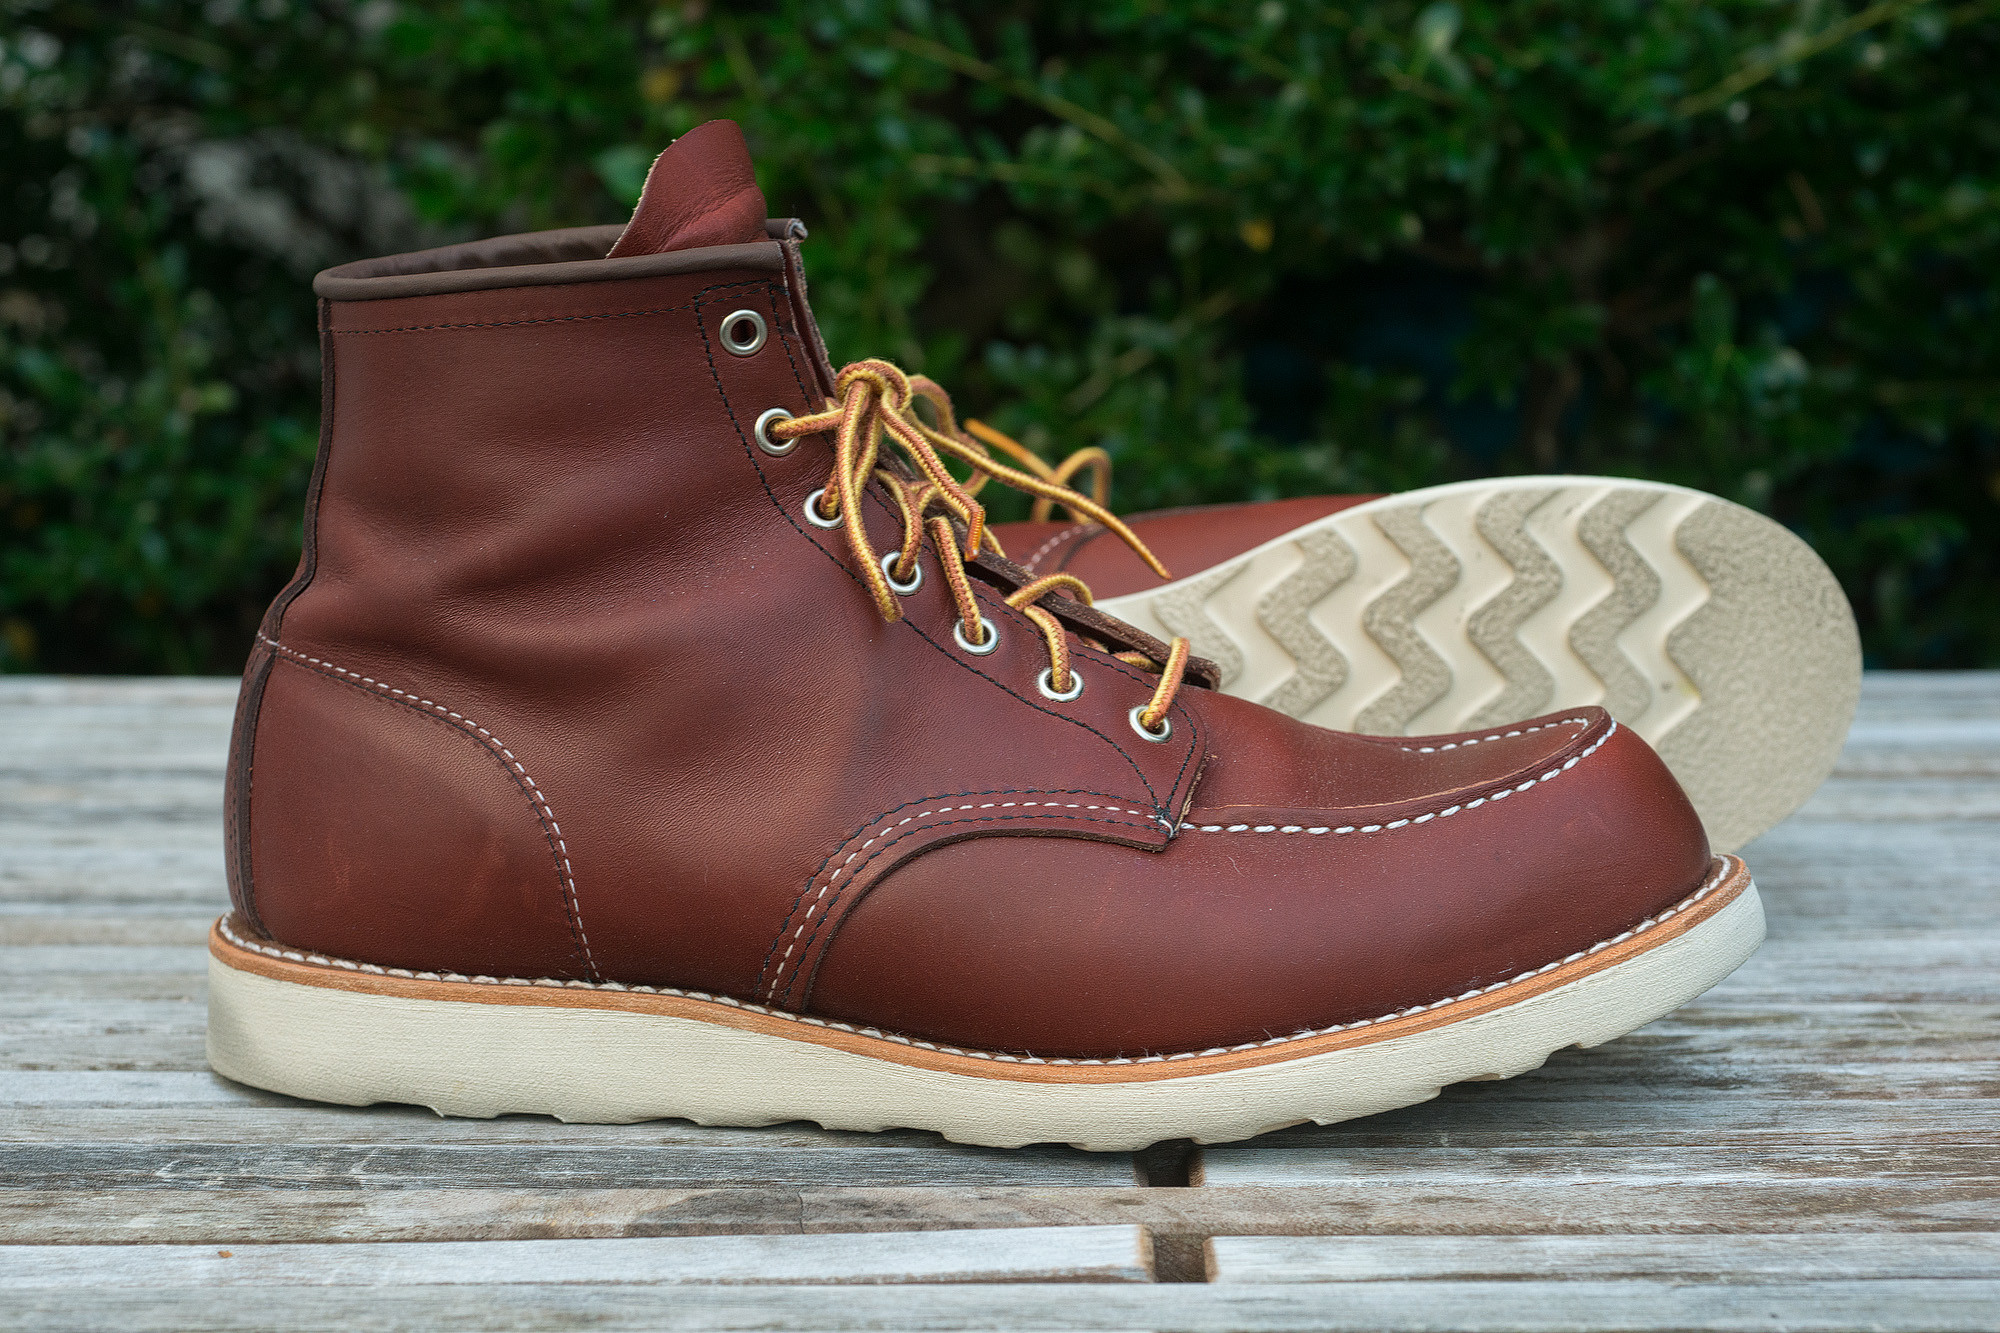 Best Red Wing Work Boots rdsBSvGl